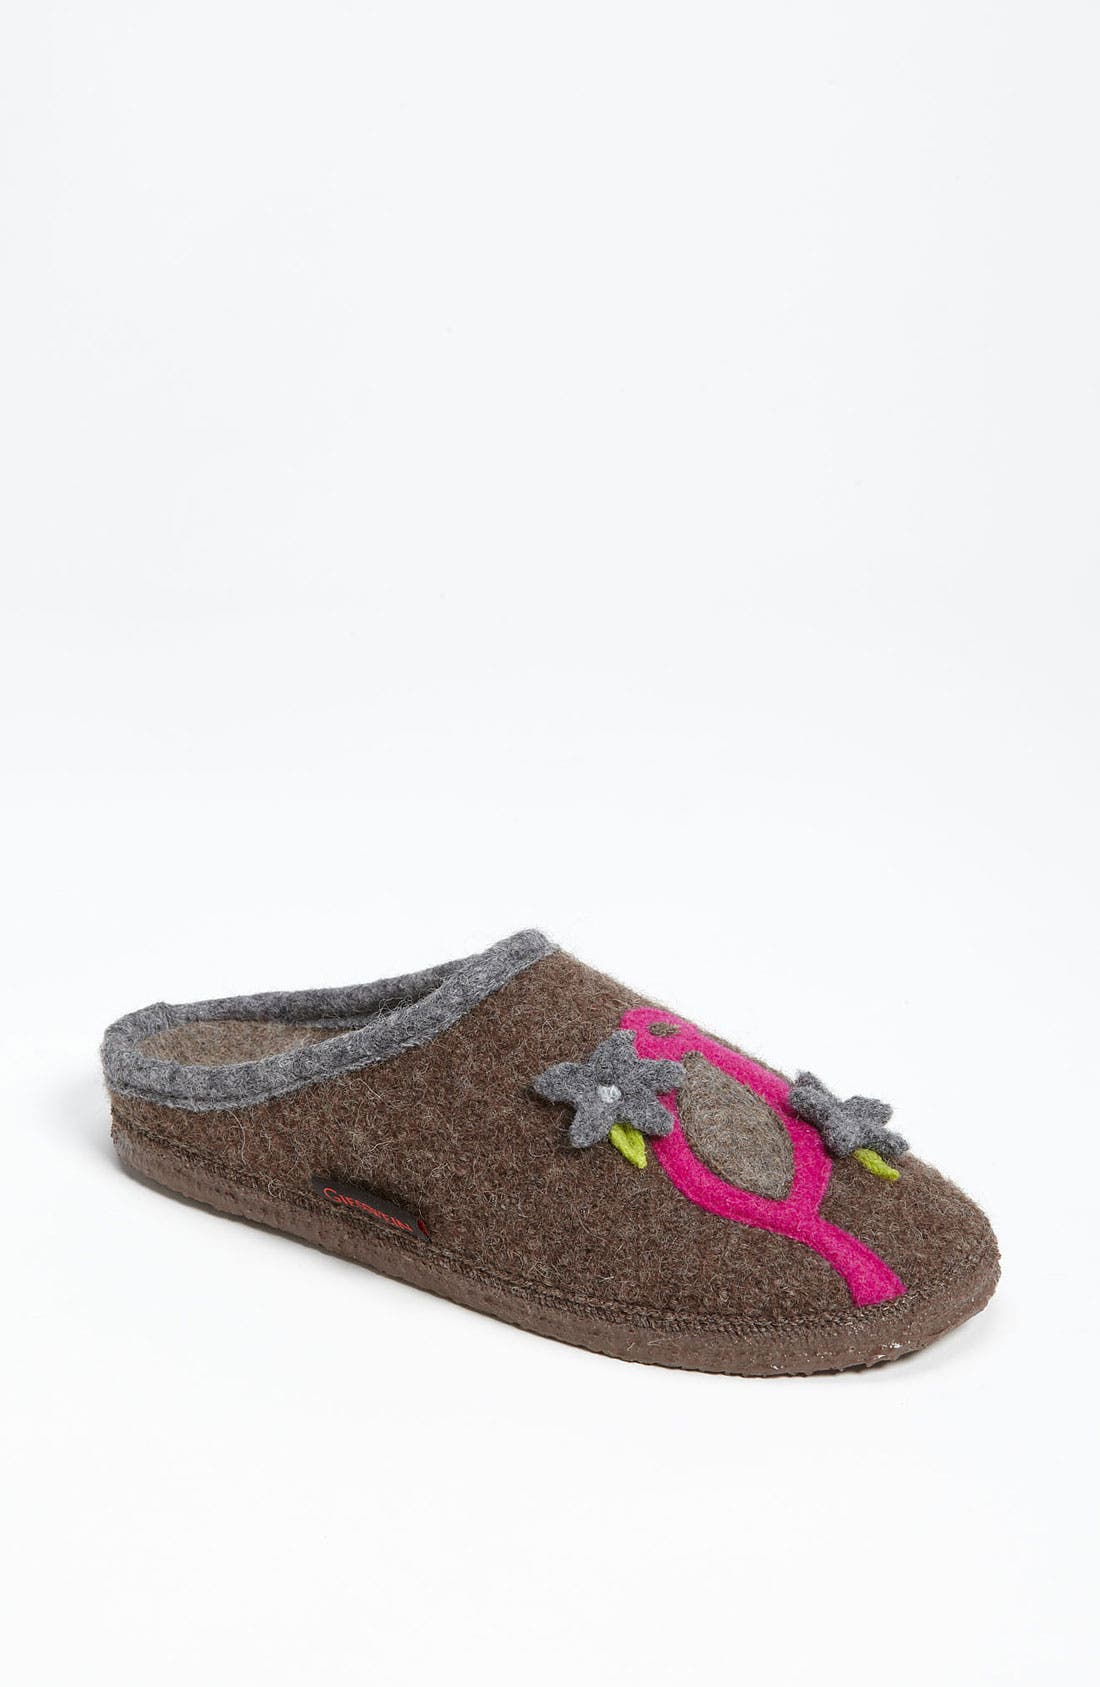 Alternate Image 1 Selected - Giesswein 'Birdhouse' Wool Slipper